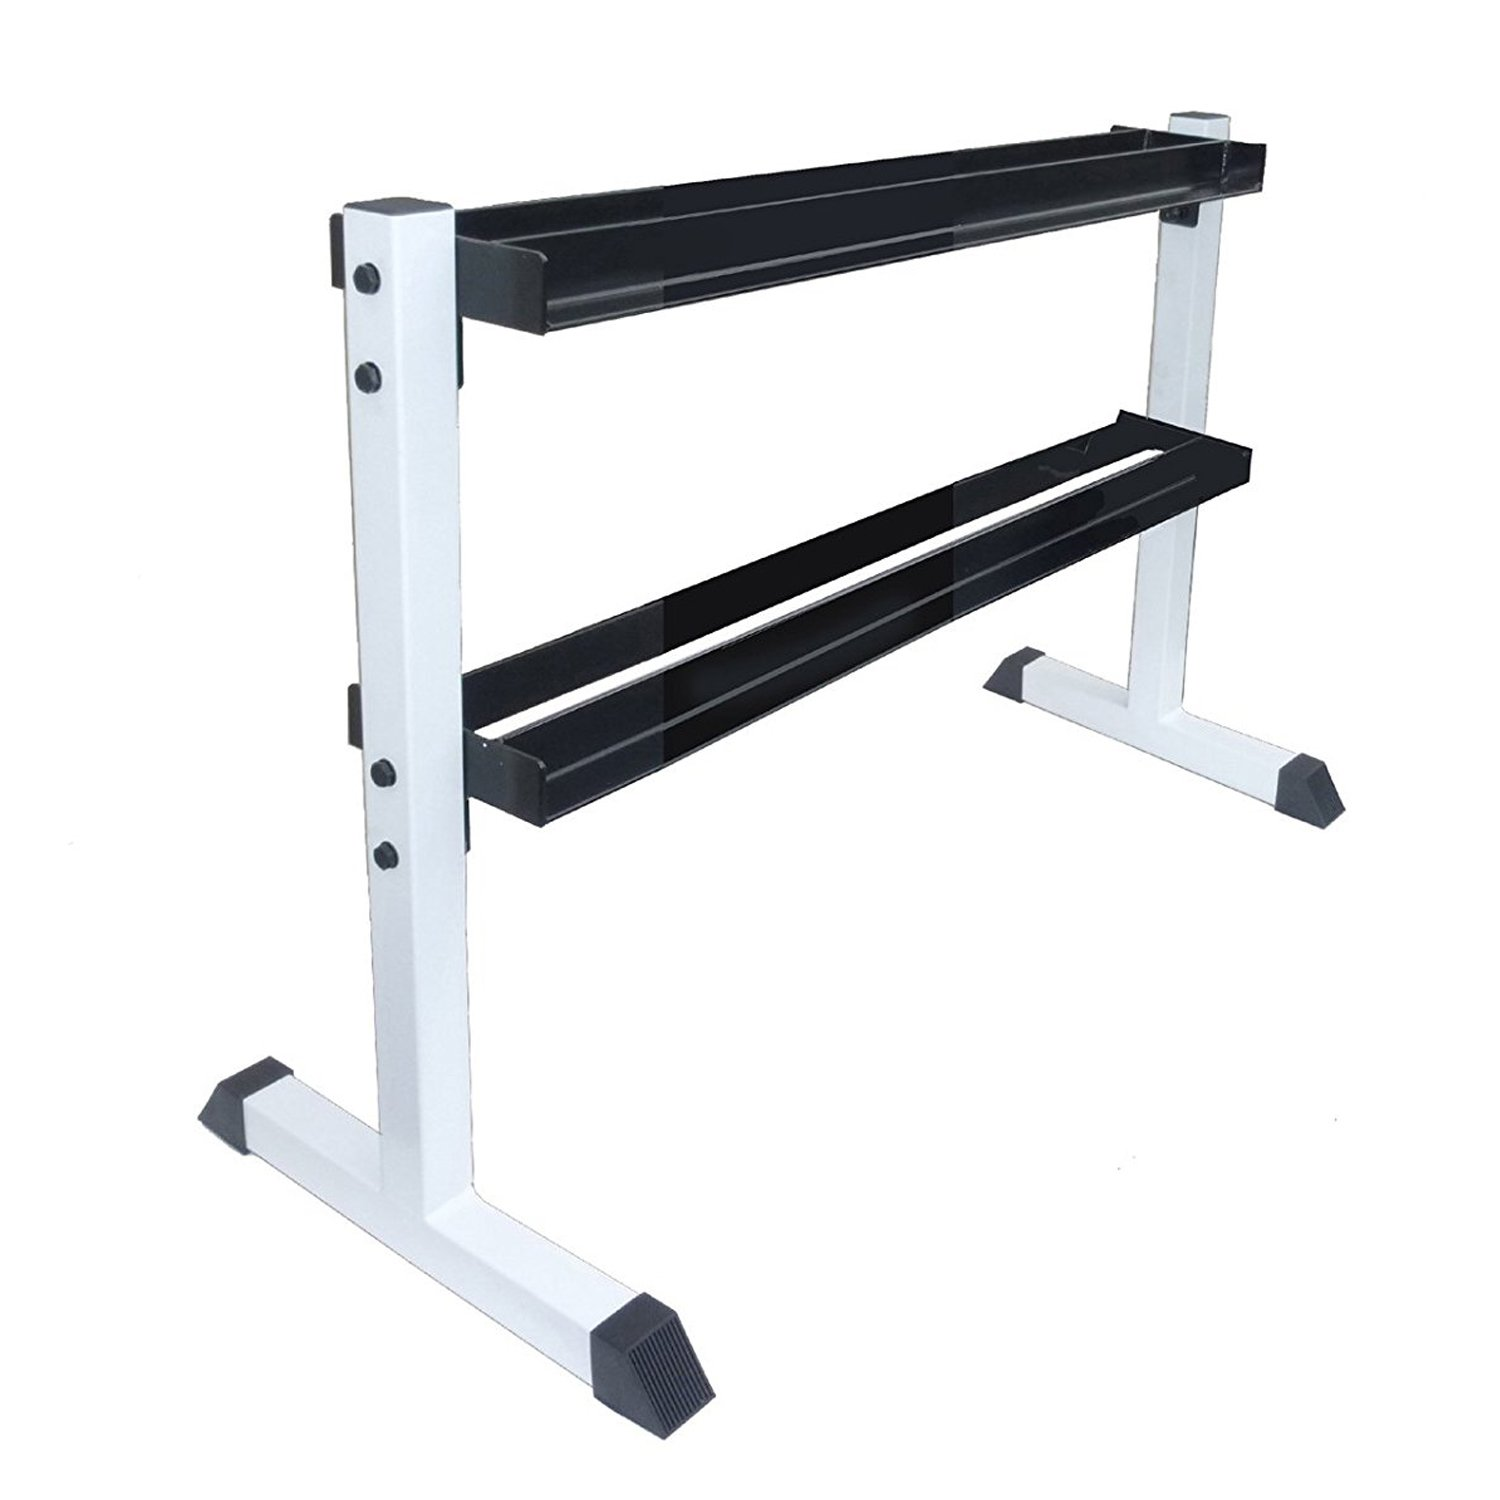 Apollo Athletics 2-Tier Vertical Dumbbell Rack, Store Up to 275LBs of Weights